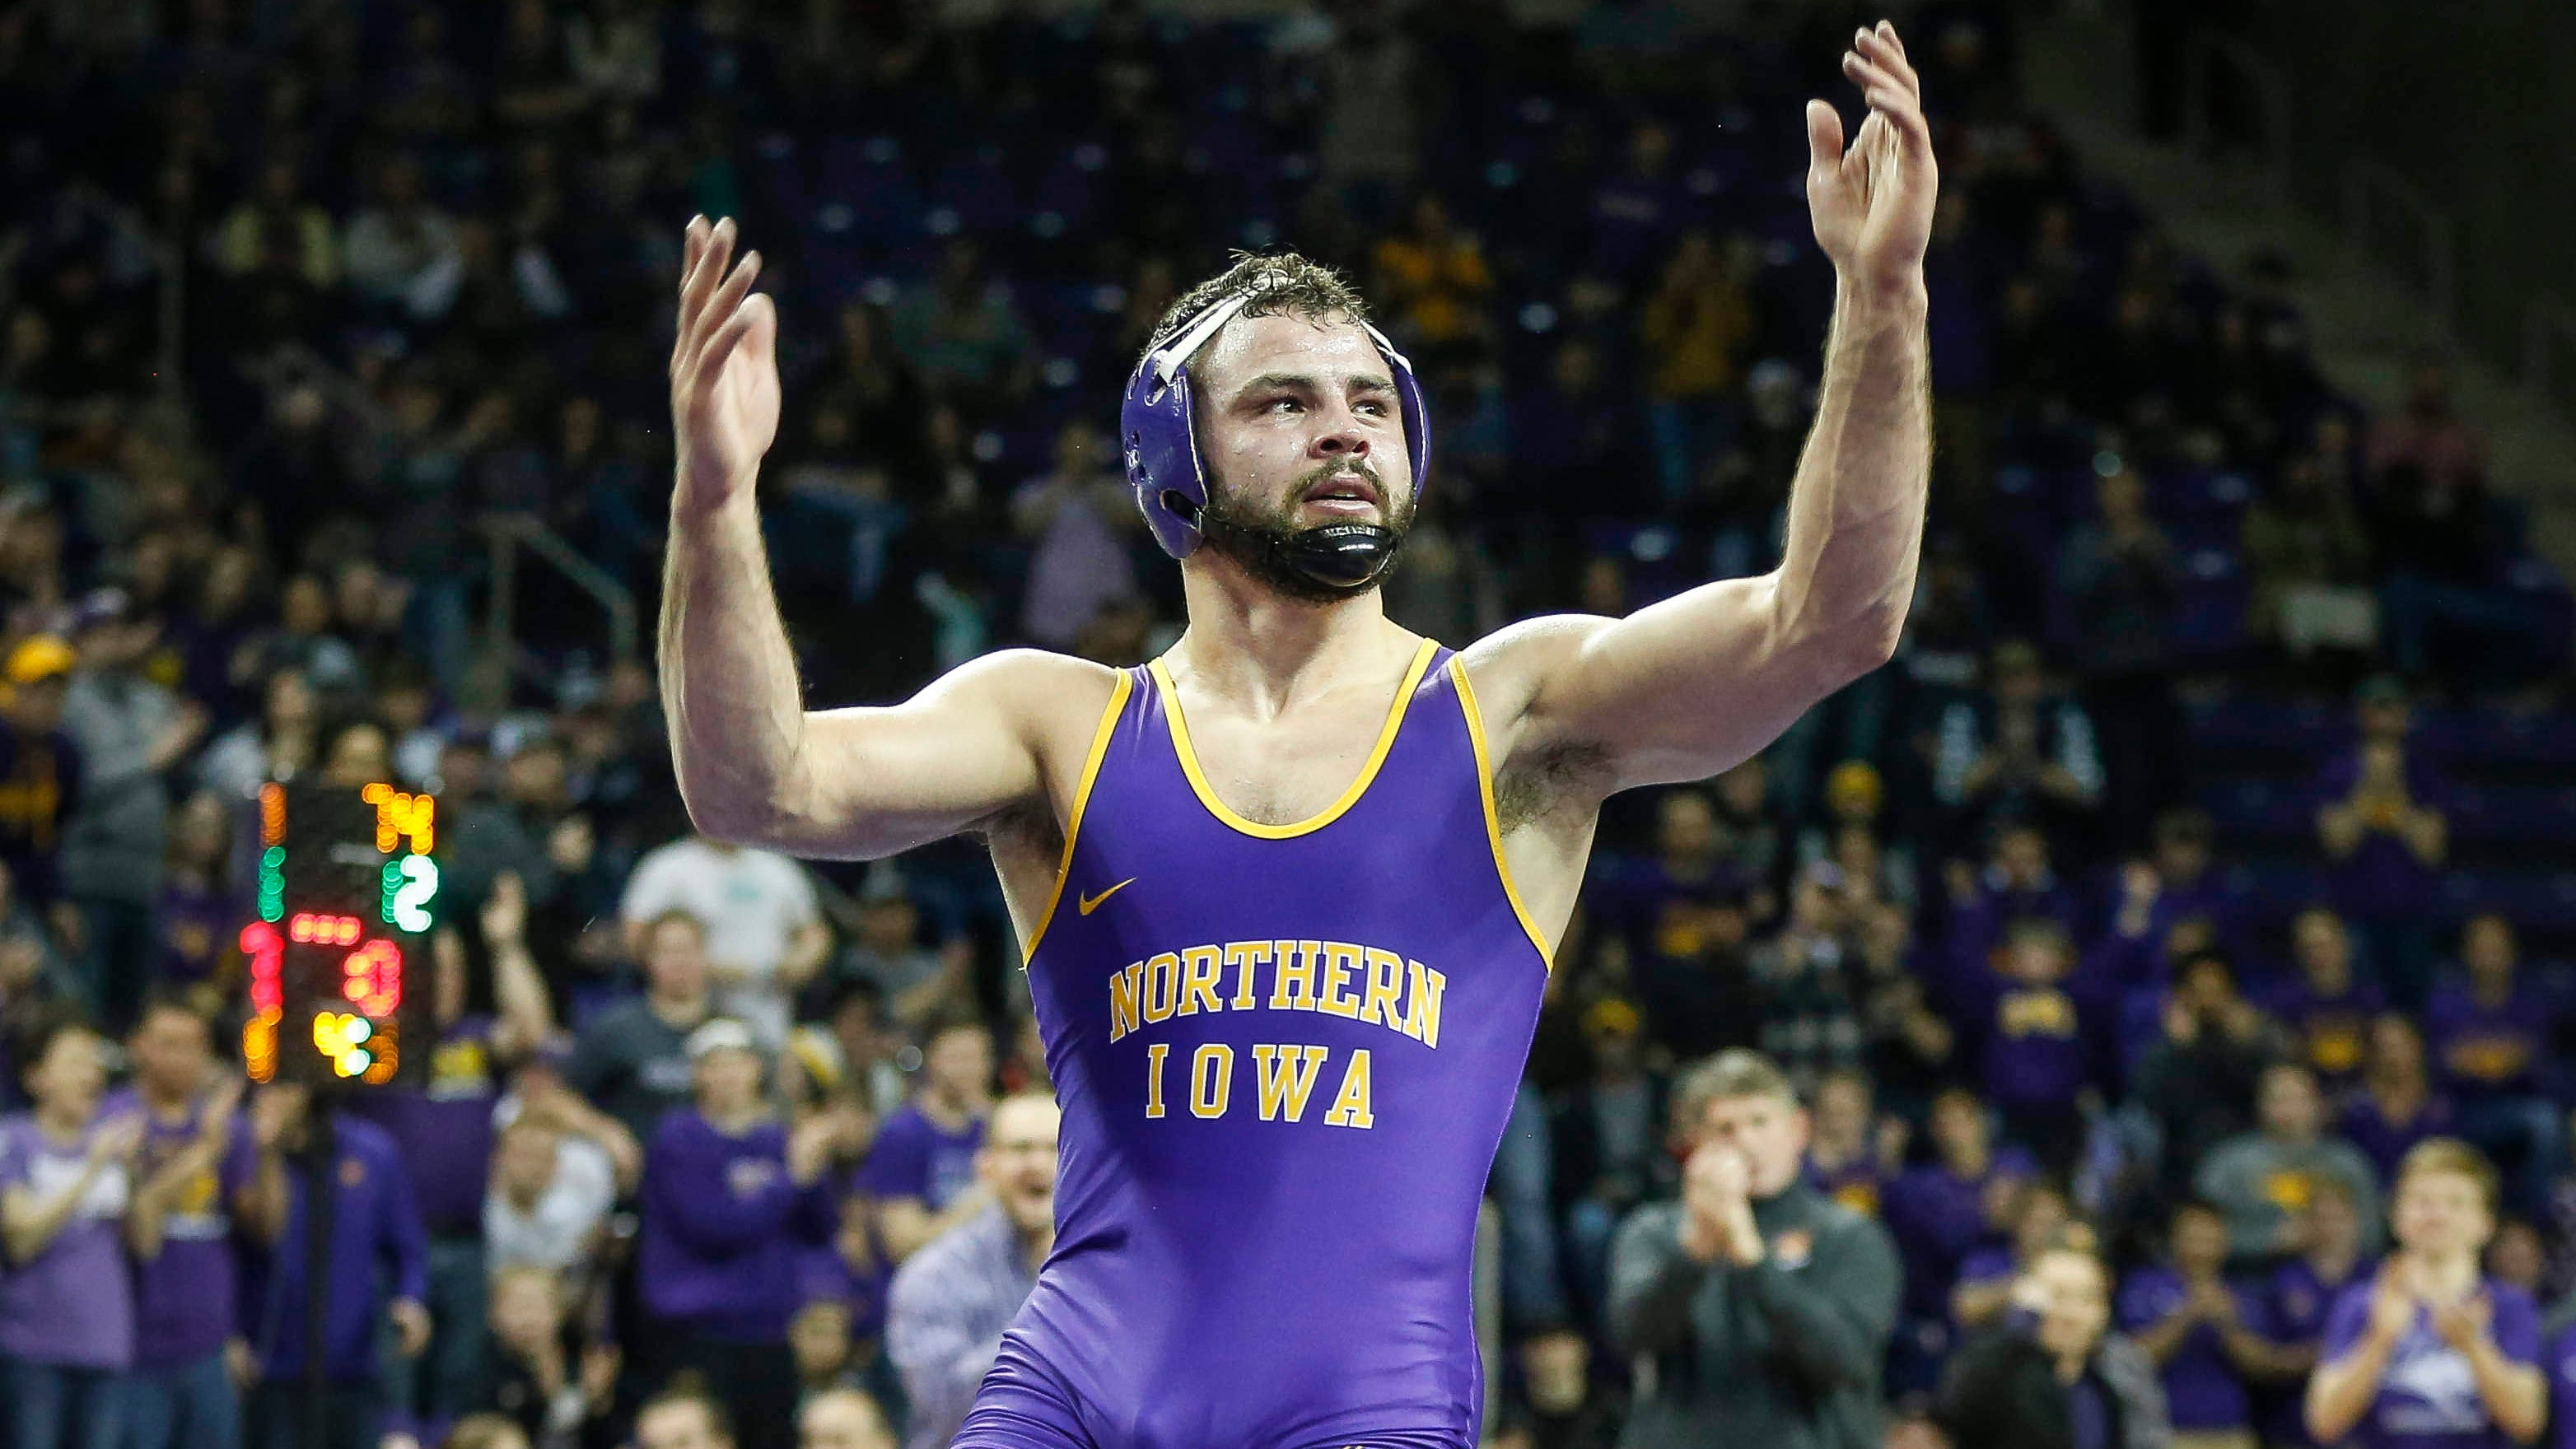 Photos: Northern Iowa wrestlers get past No. 8 Oklahoma State